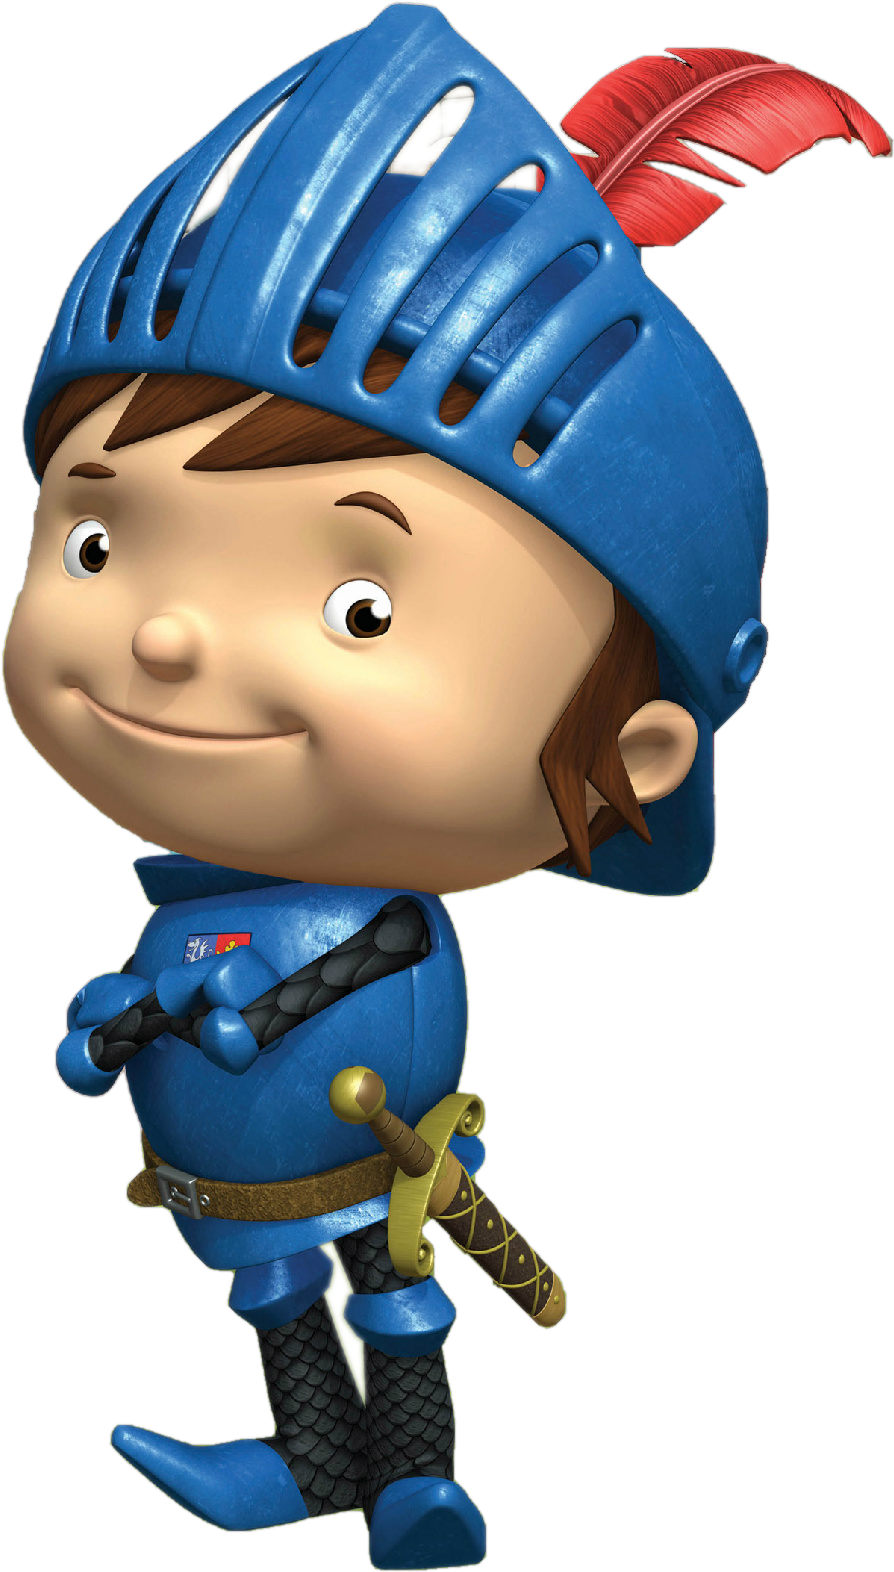 Mike the knight png. Image fotoflexer photo miketheknight